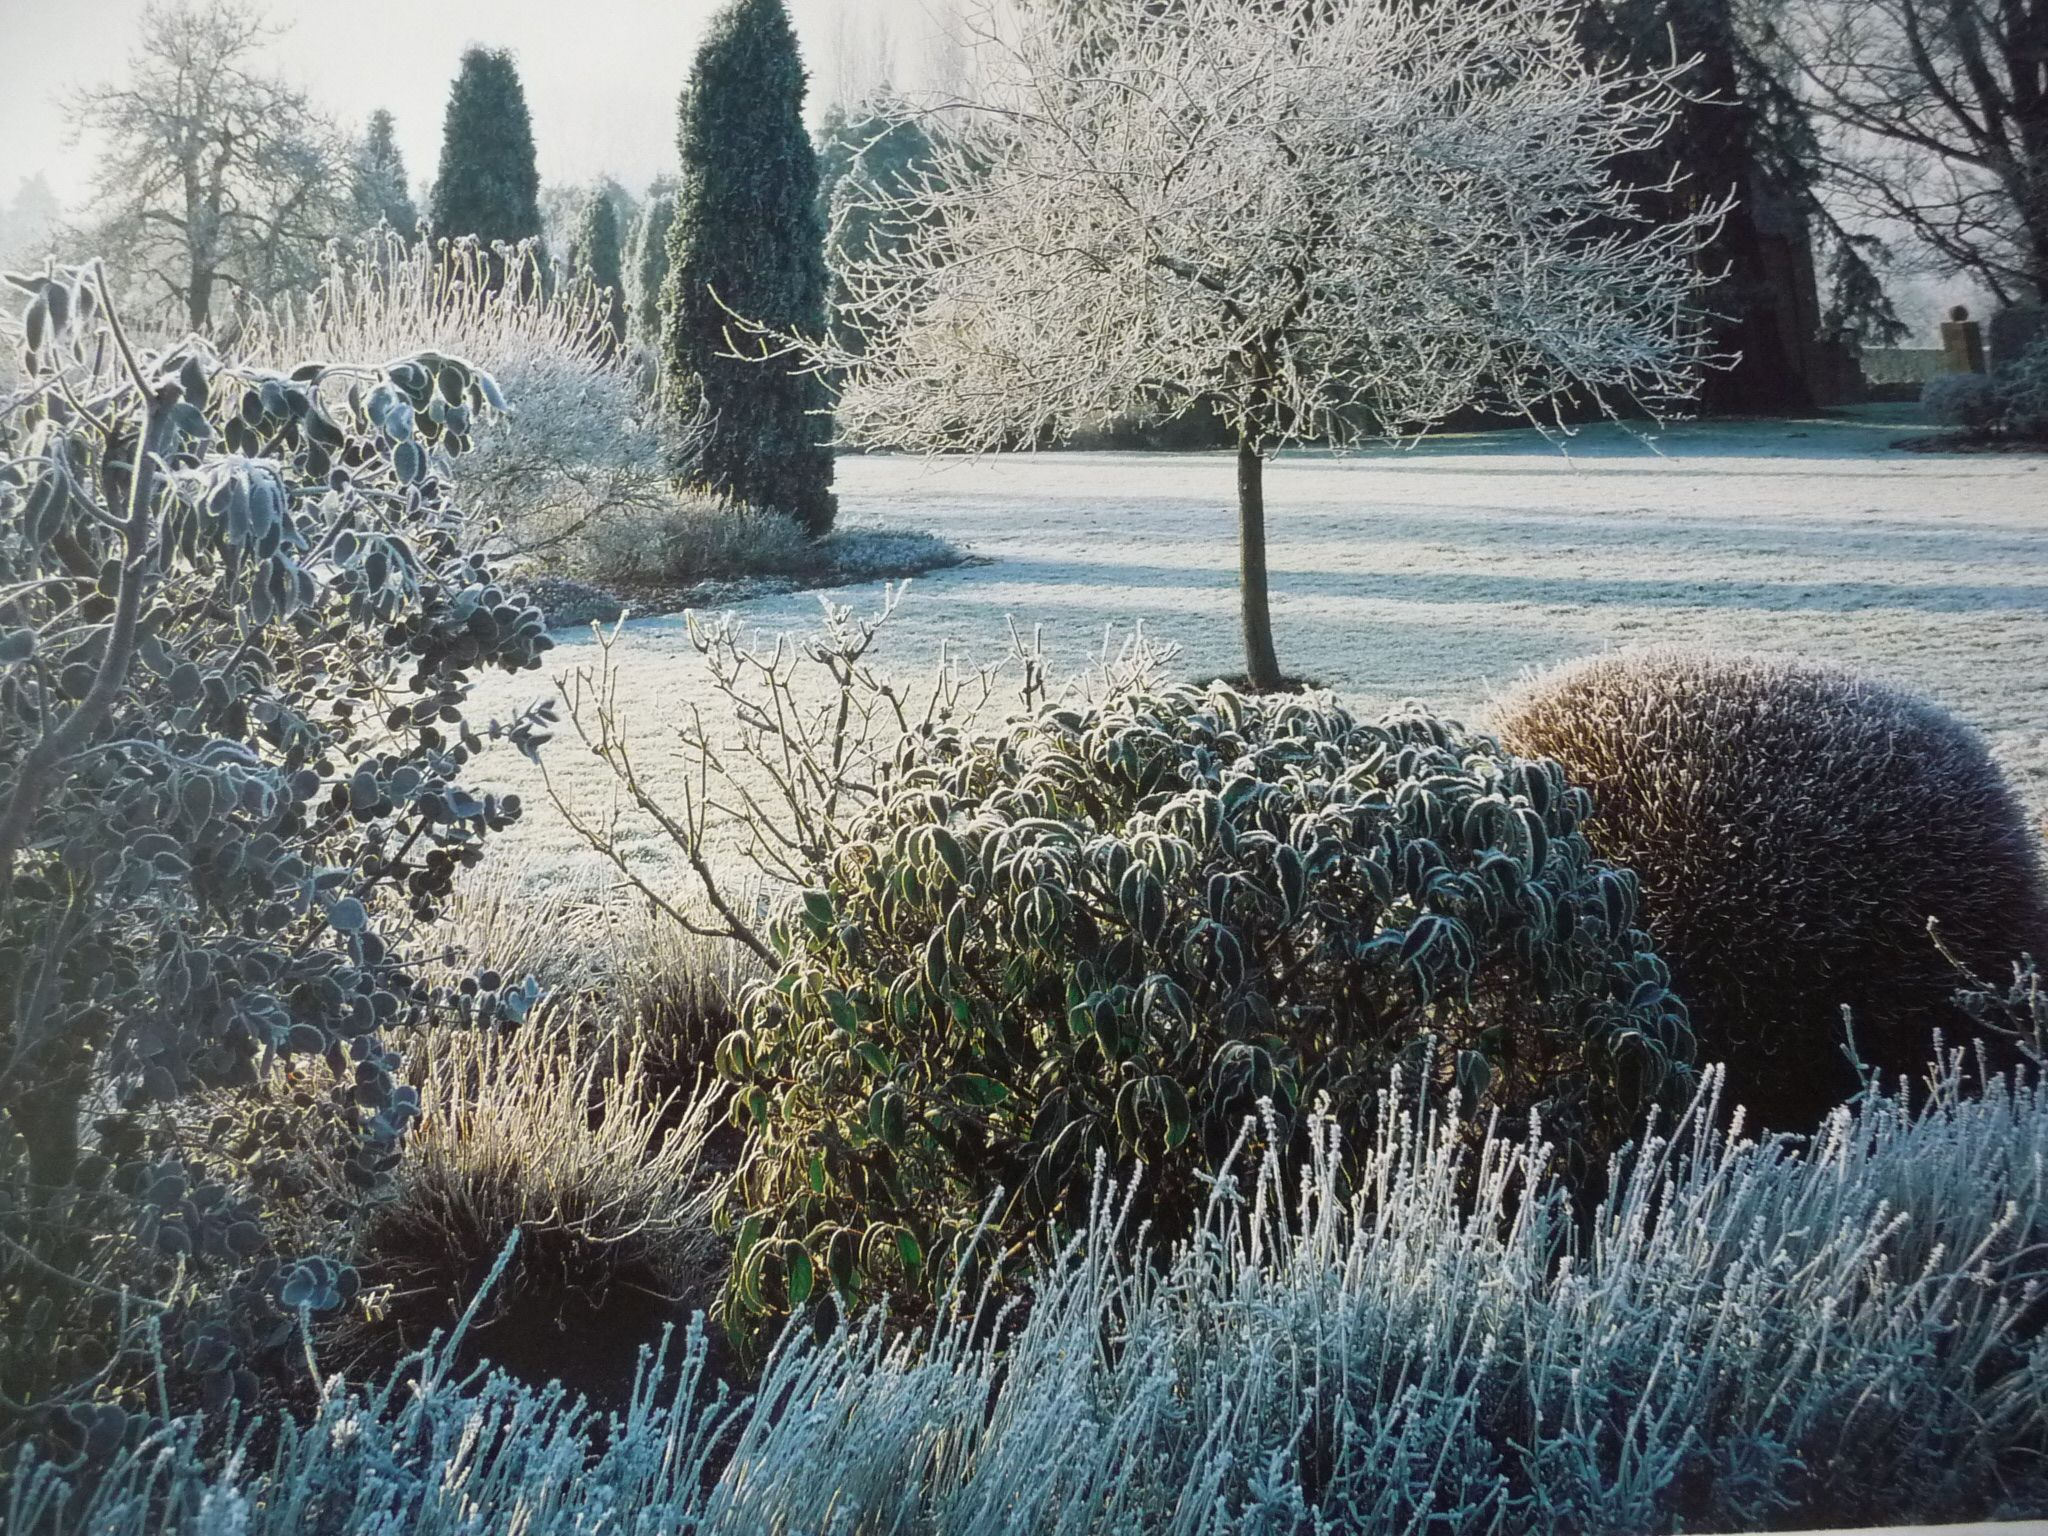 a garden in winter | winter gardening | pinterest | gärten und winter, Gartengerate ideen